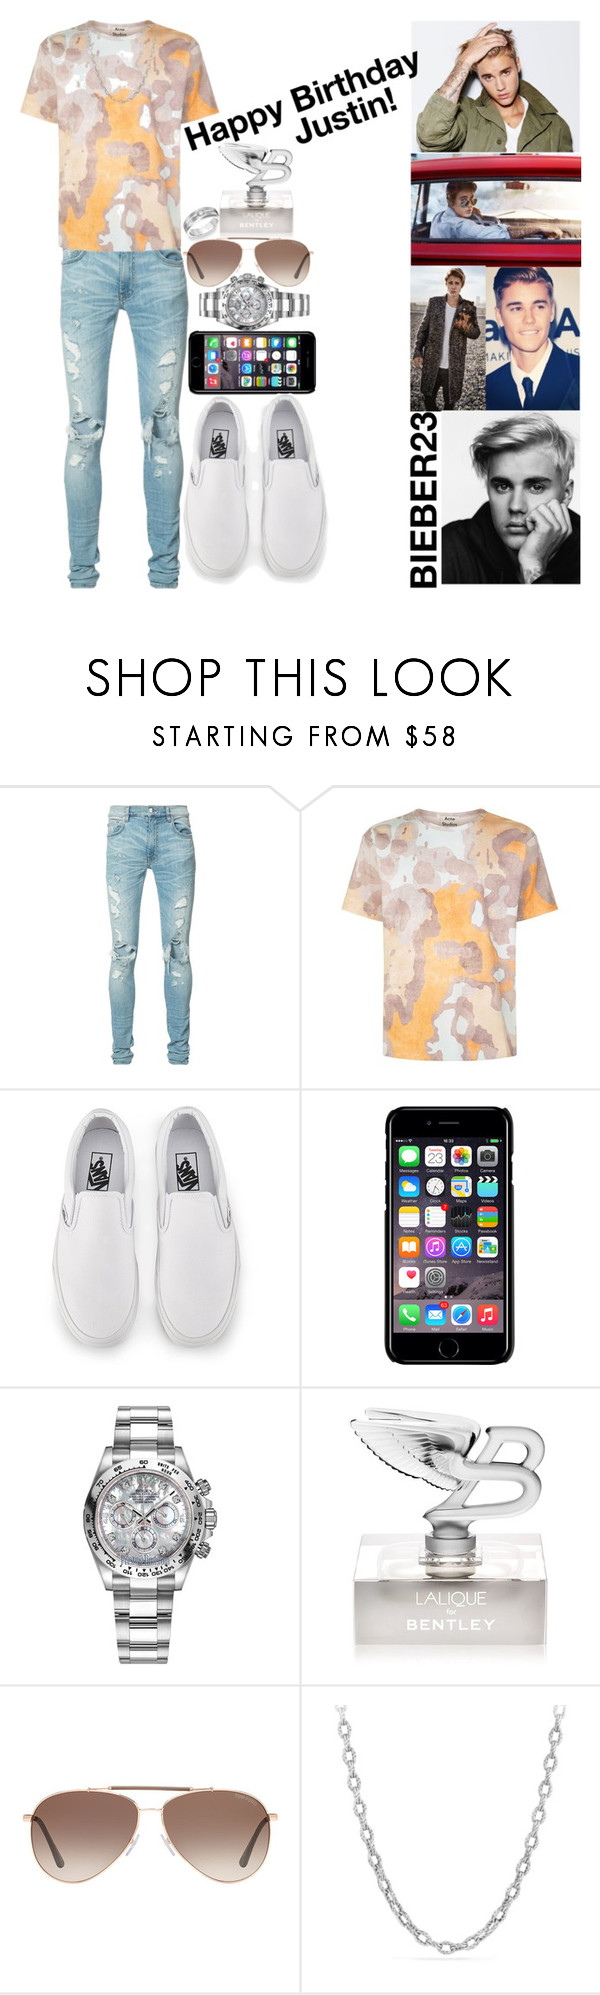 """""""Happy 23th Birthday Justin!"""" by ludyabelieveinme ❤ liked on Polyvore featuring AMIRI, Acne Studios, Vans, Off-White, Rolex, Bentley, Tom Ford, David Yurman and Justin Bieber"""